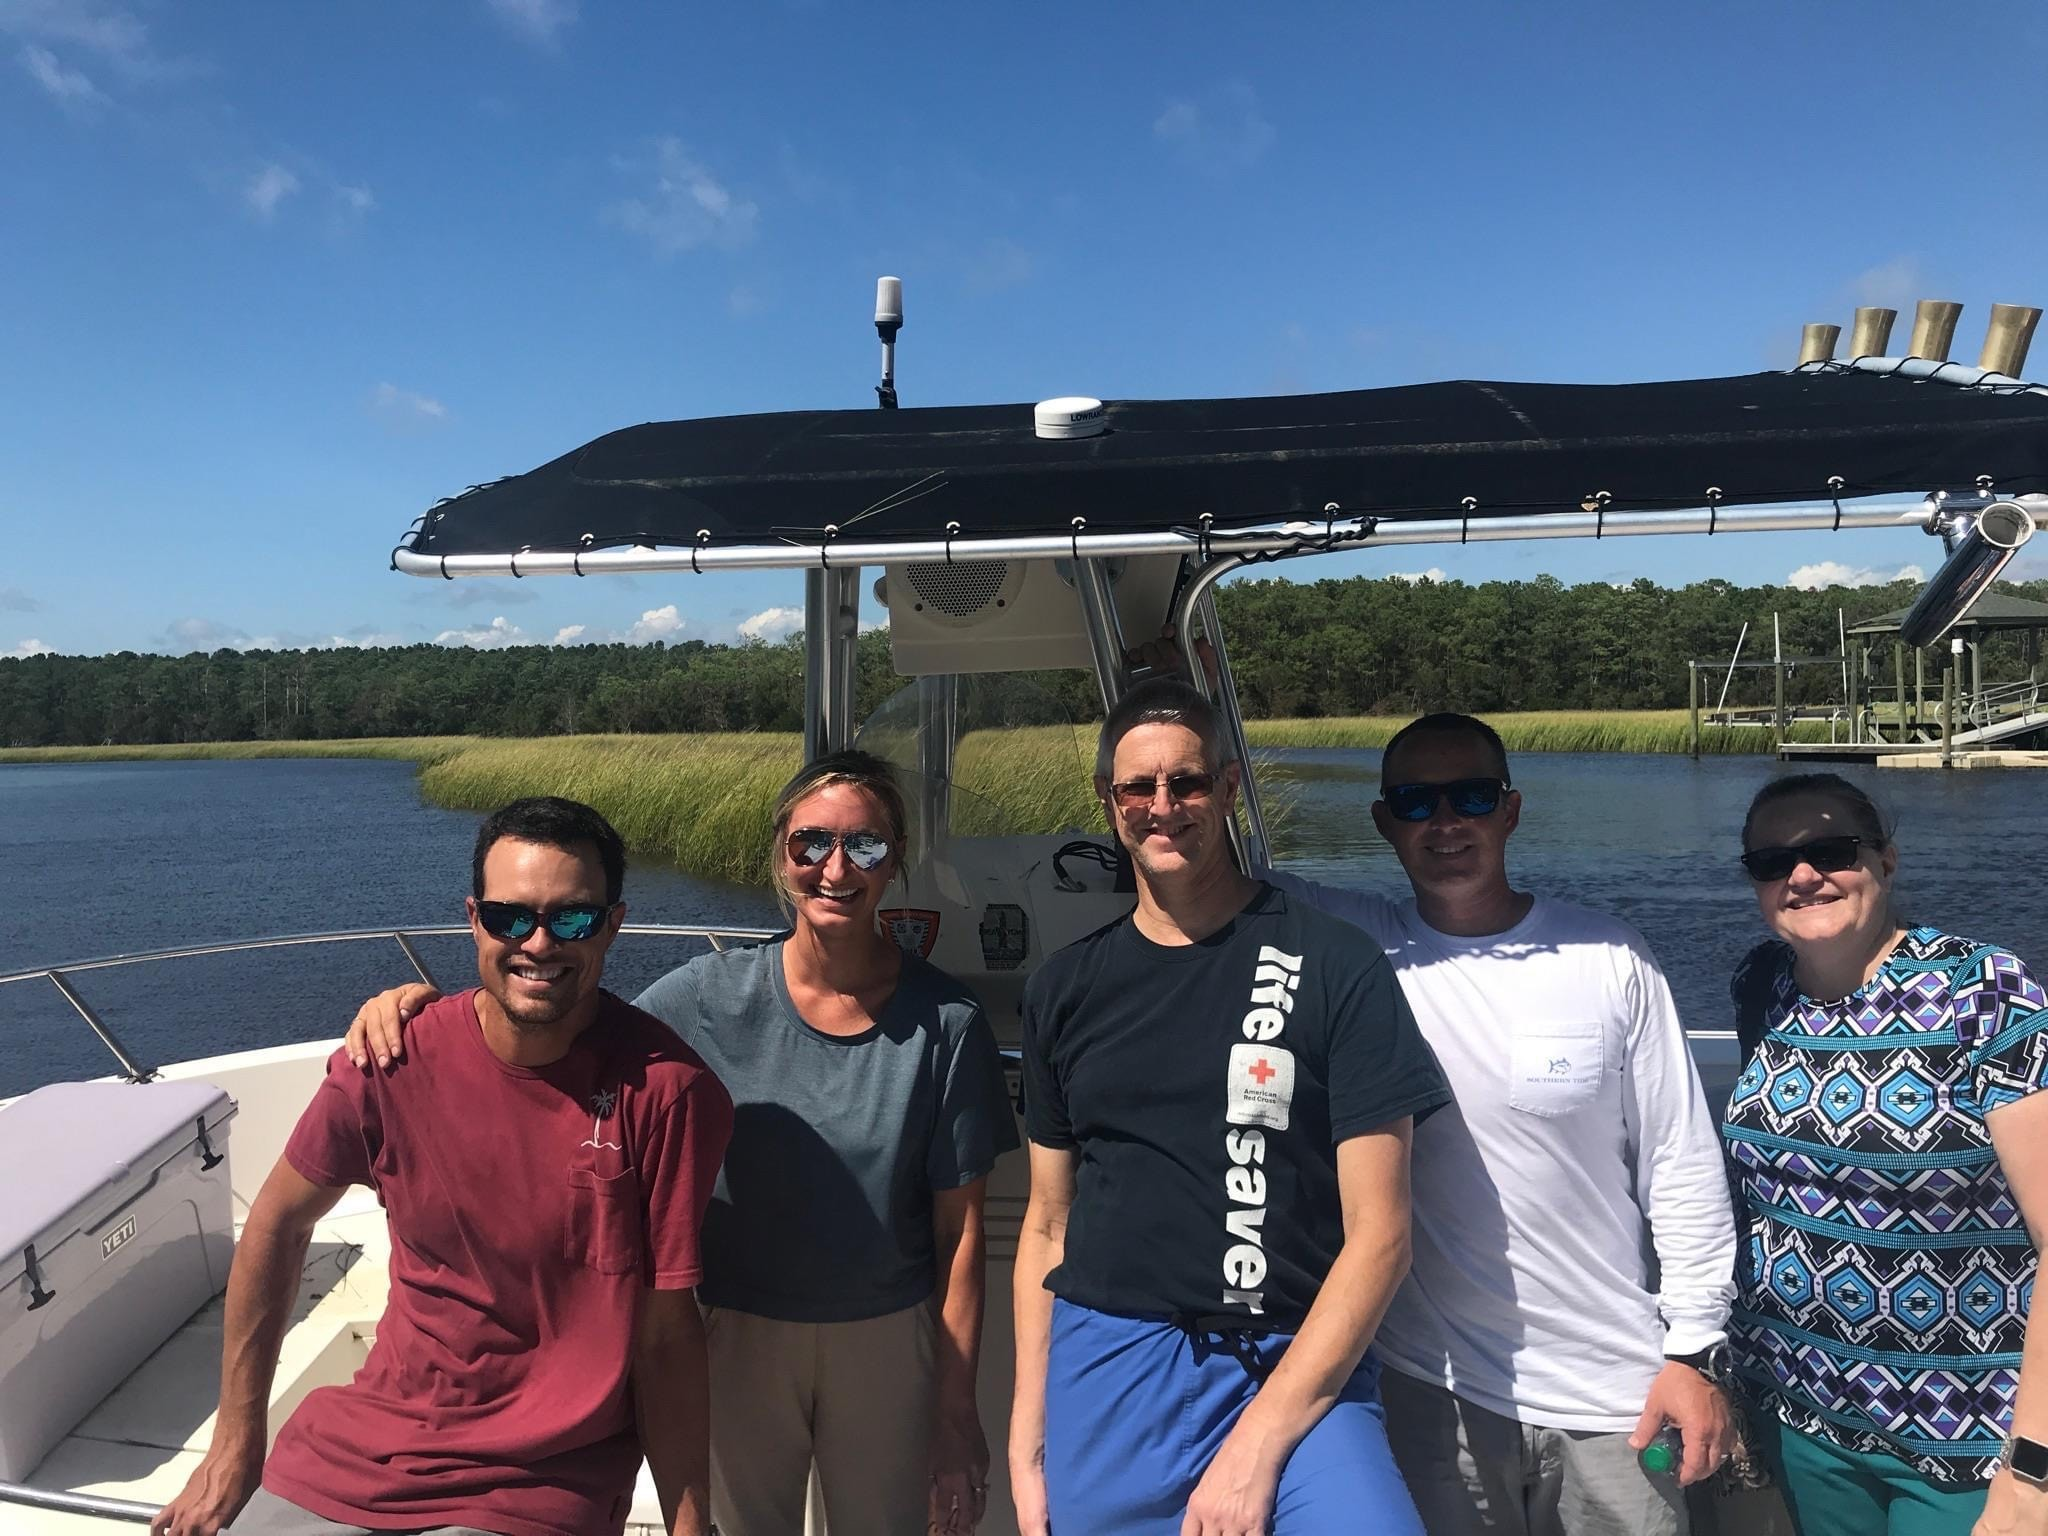 Dr. Mason and fellow team members take boat to work due to hurricane flooding.